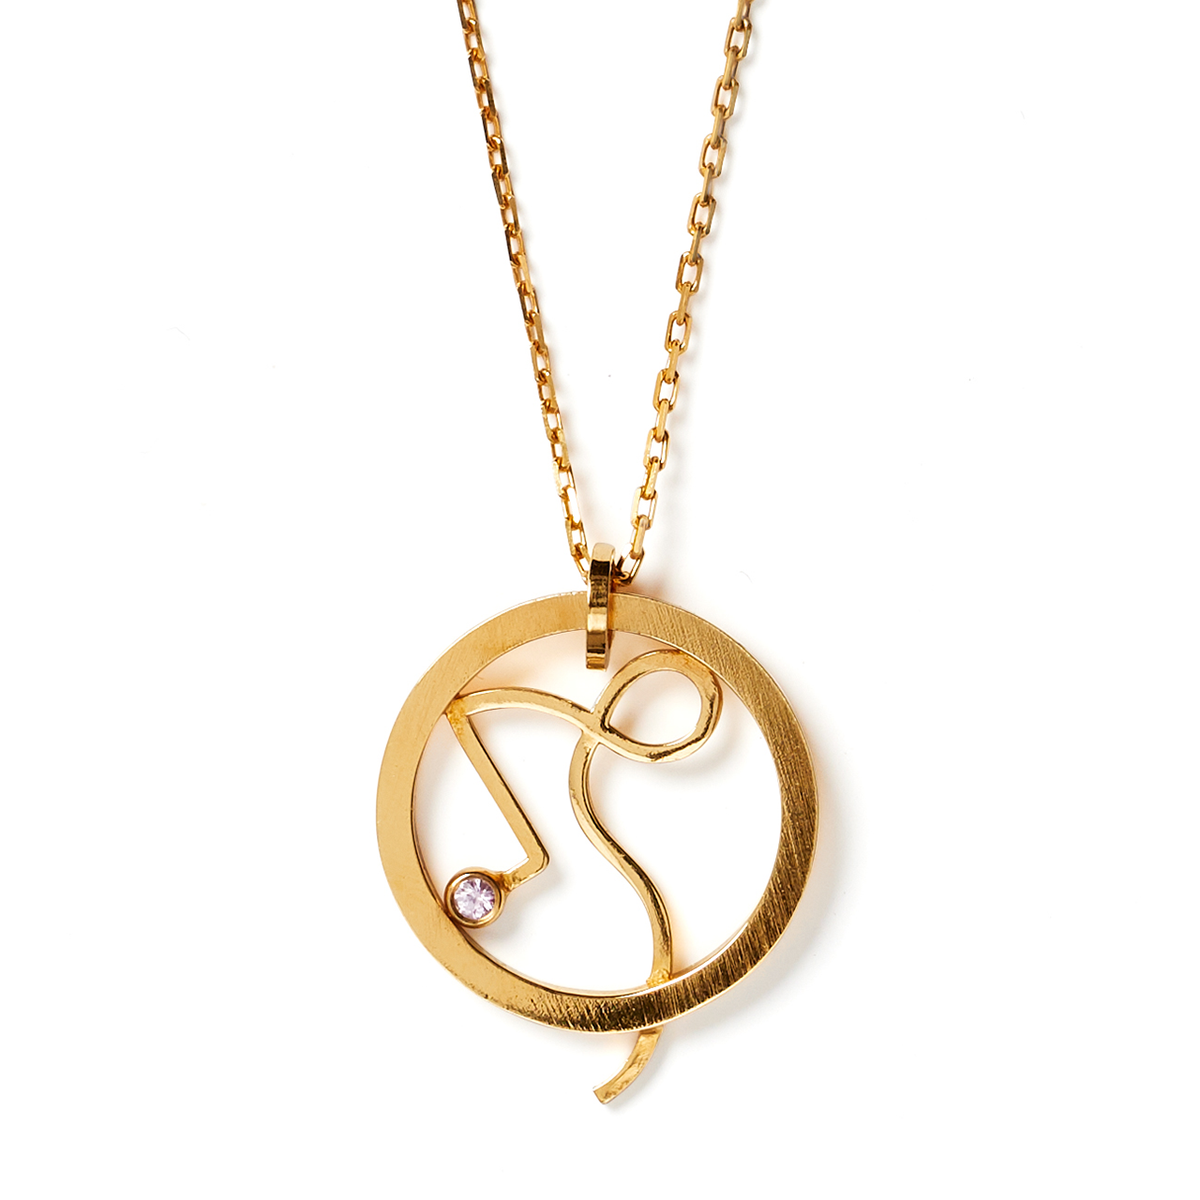 Zodiac Necklace 'Capricorn'